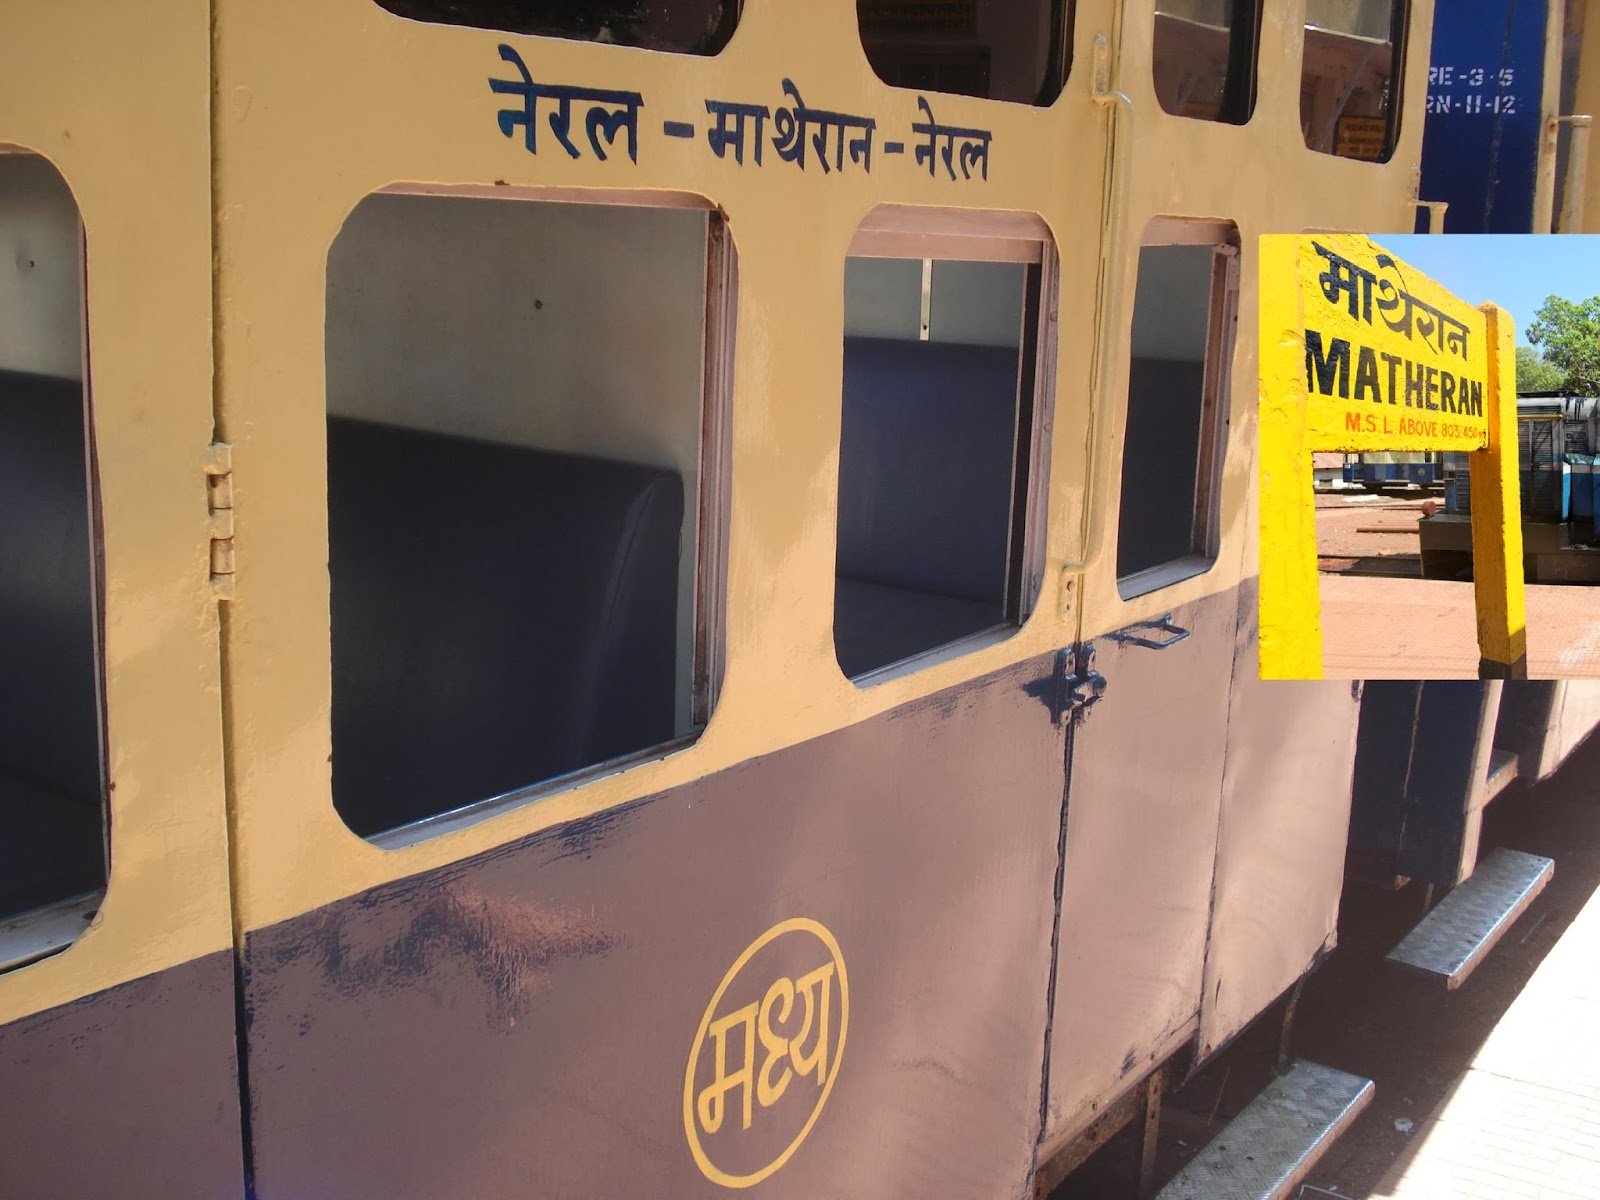 Neral to Matheran Train Timings Latest